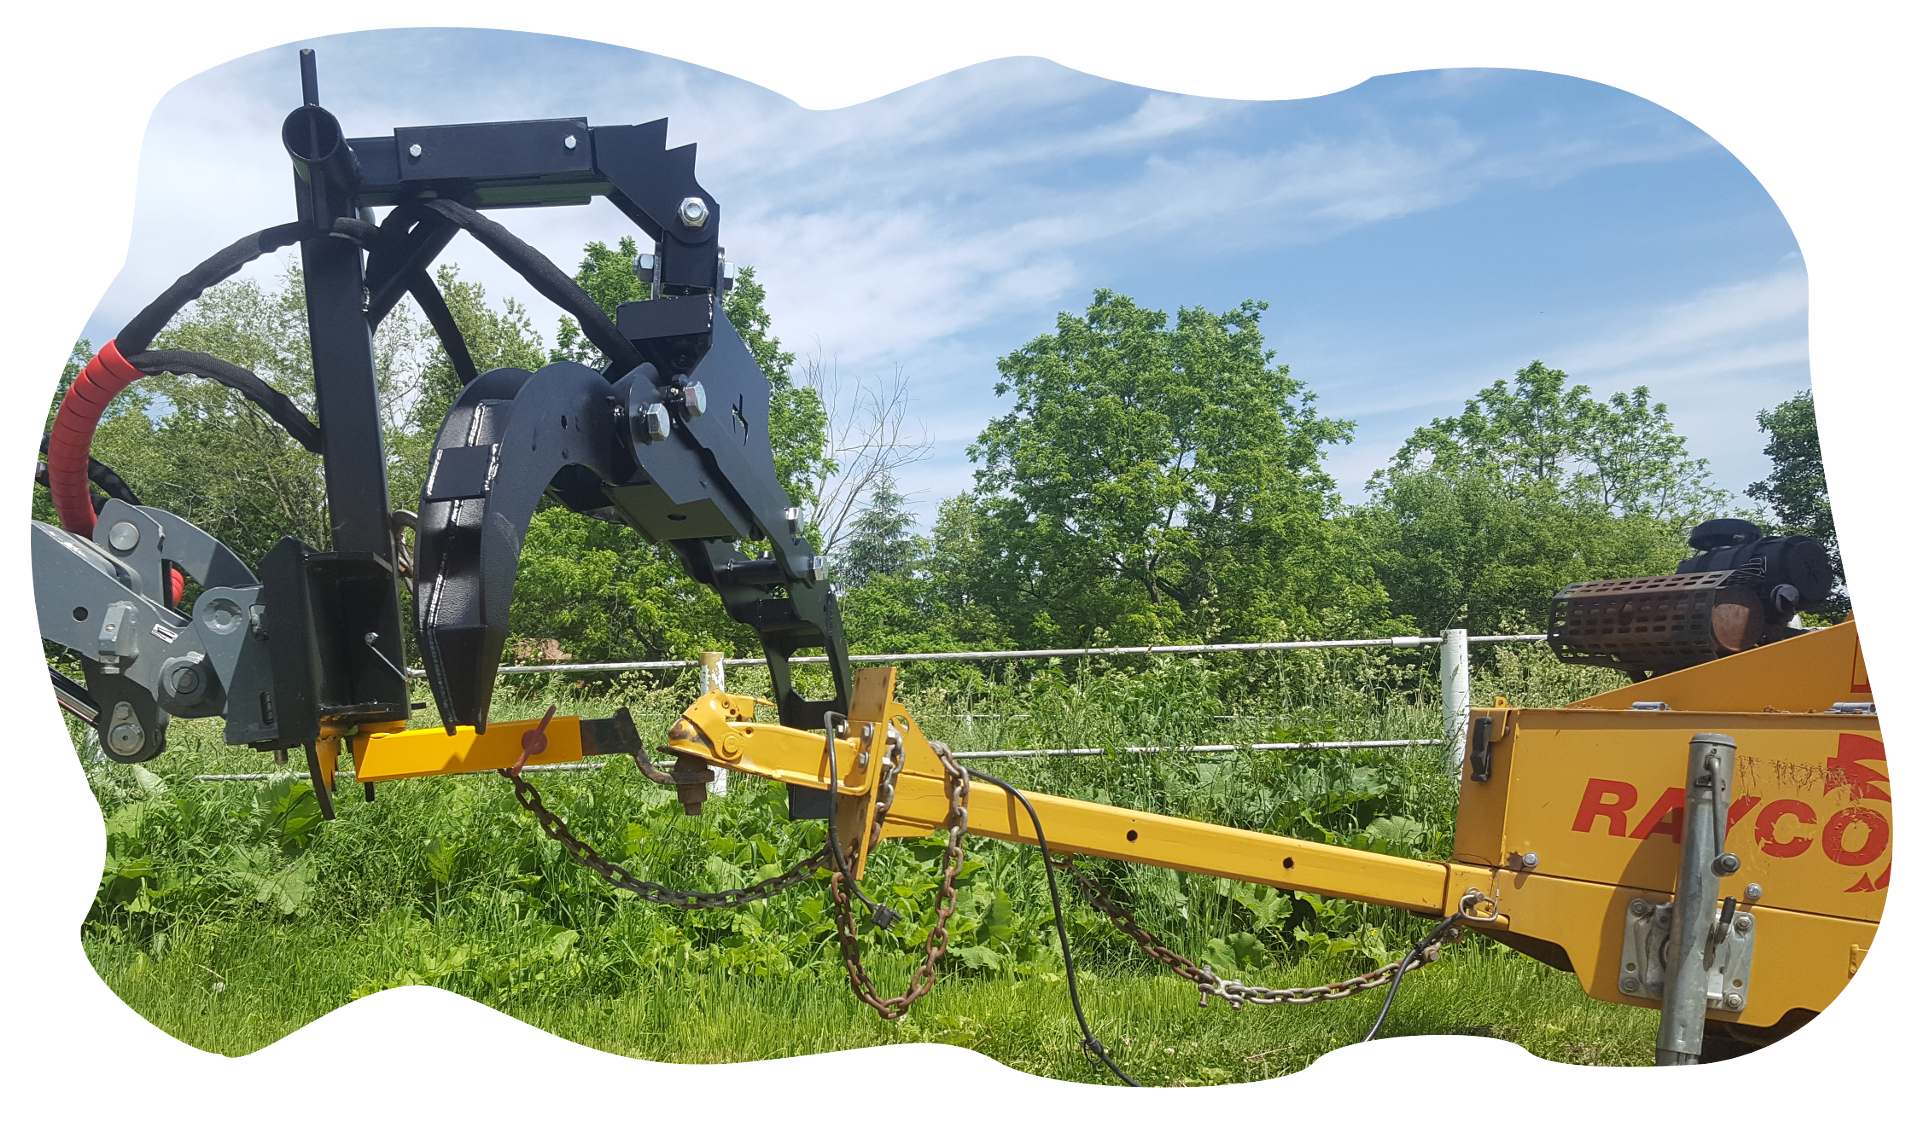 Boxer 320 with a Branch Manager Grapple (BMG)